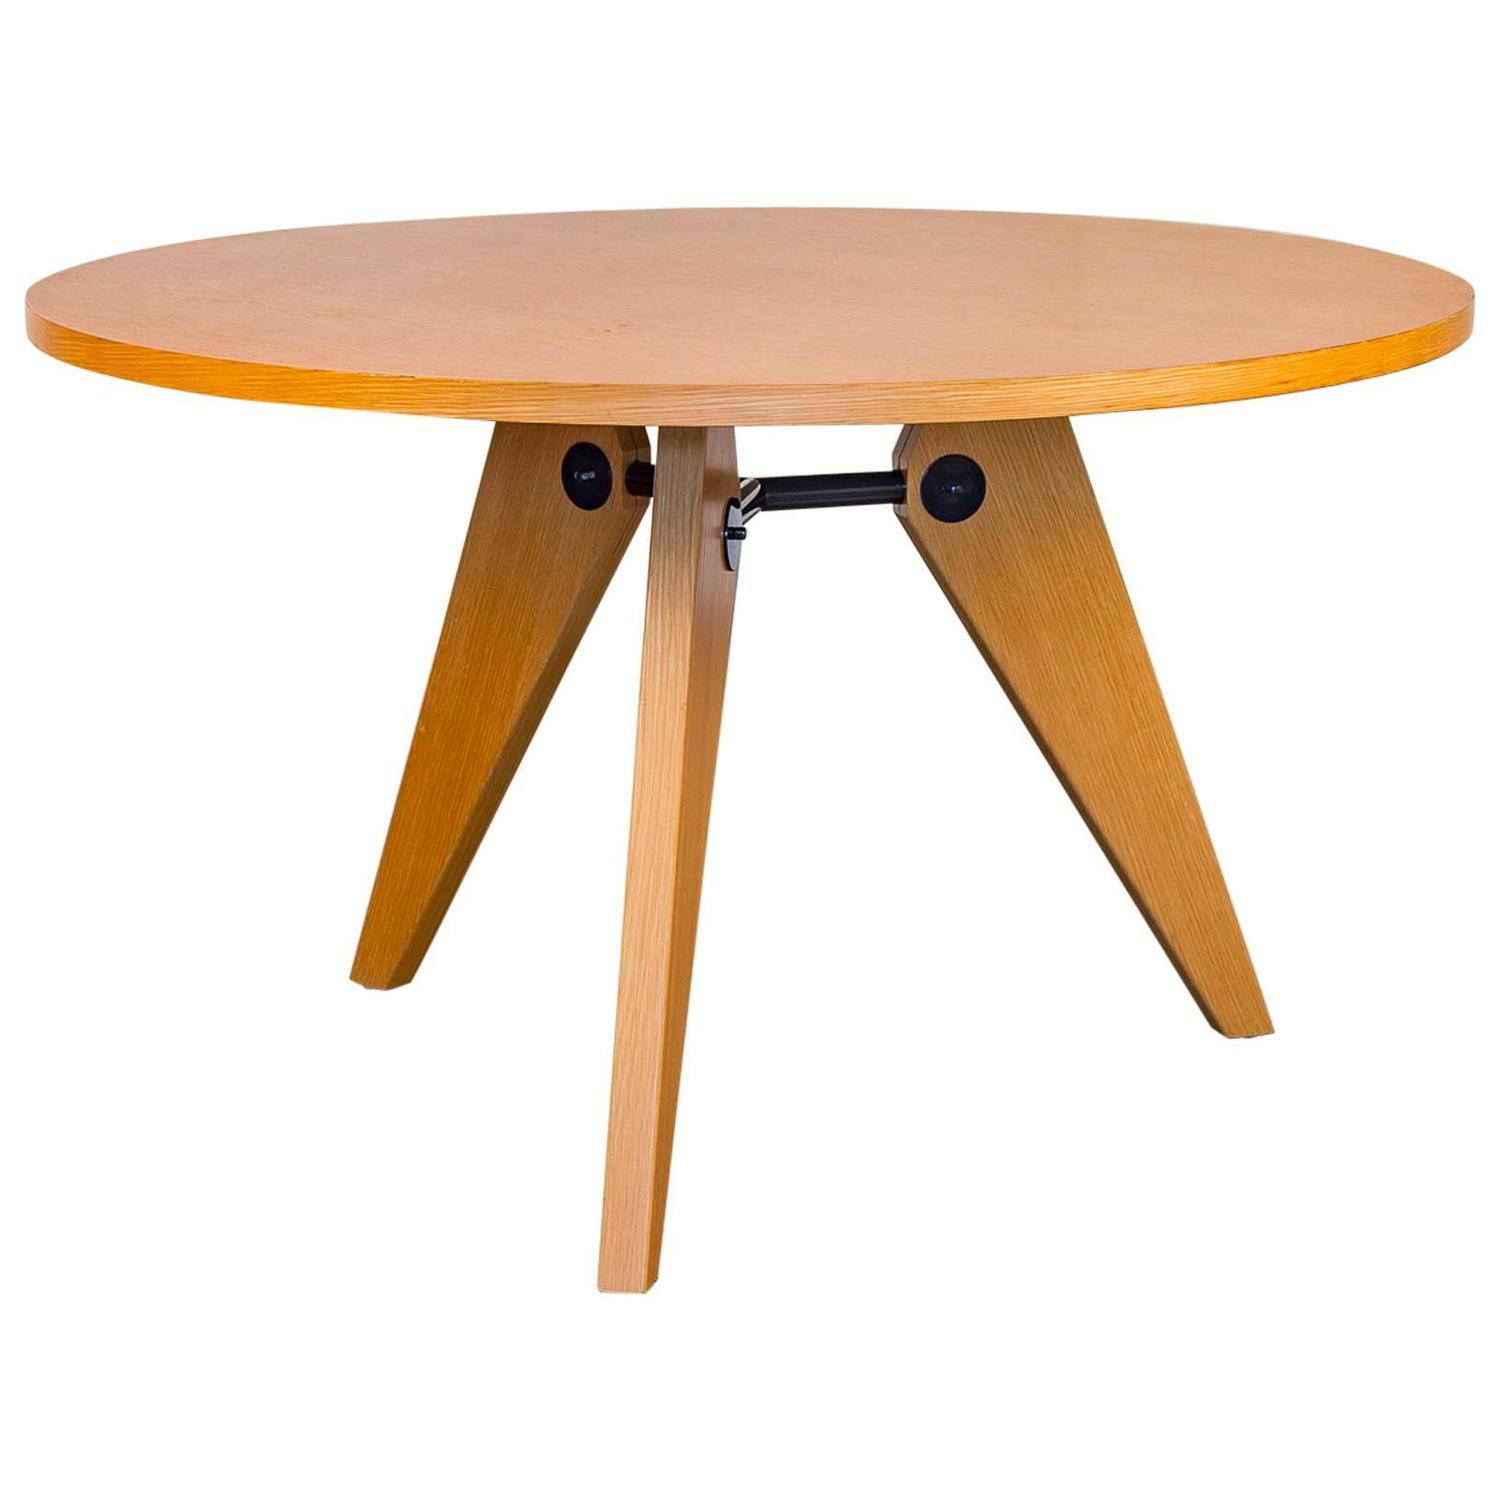 Gueridon Table Jean Prouvé Guéridon Table For Sale At 1stdibs